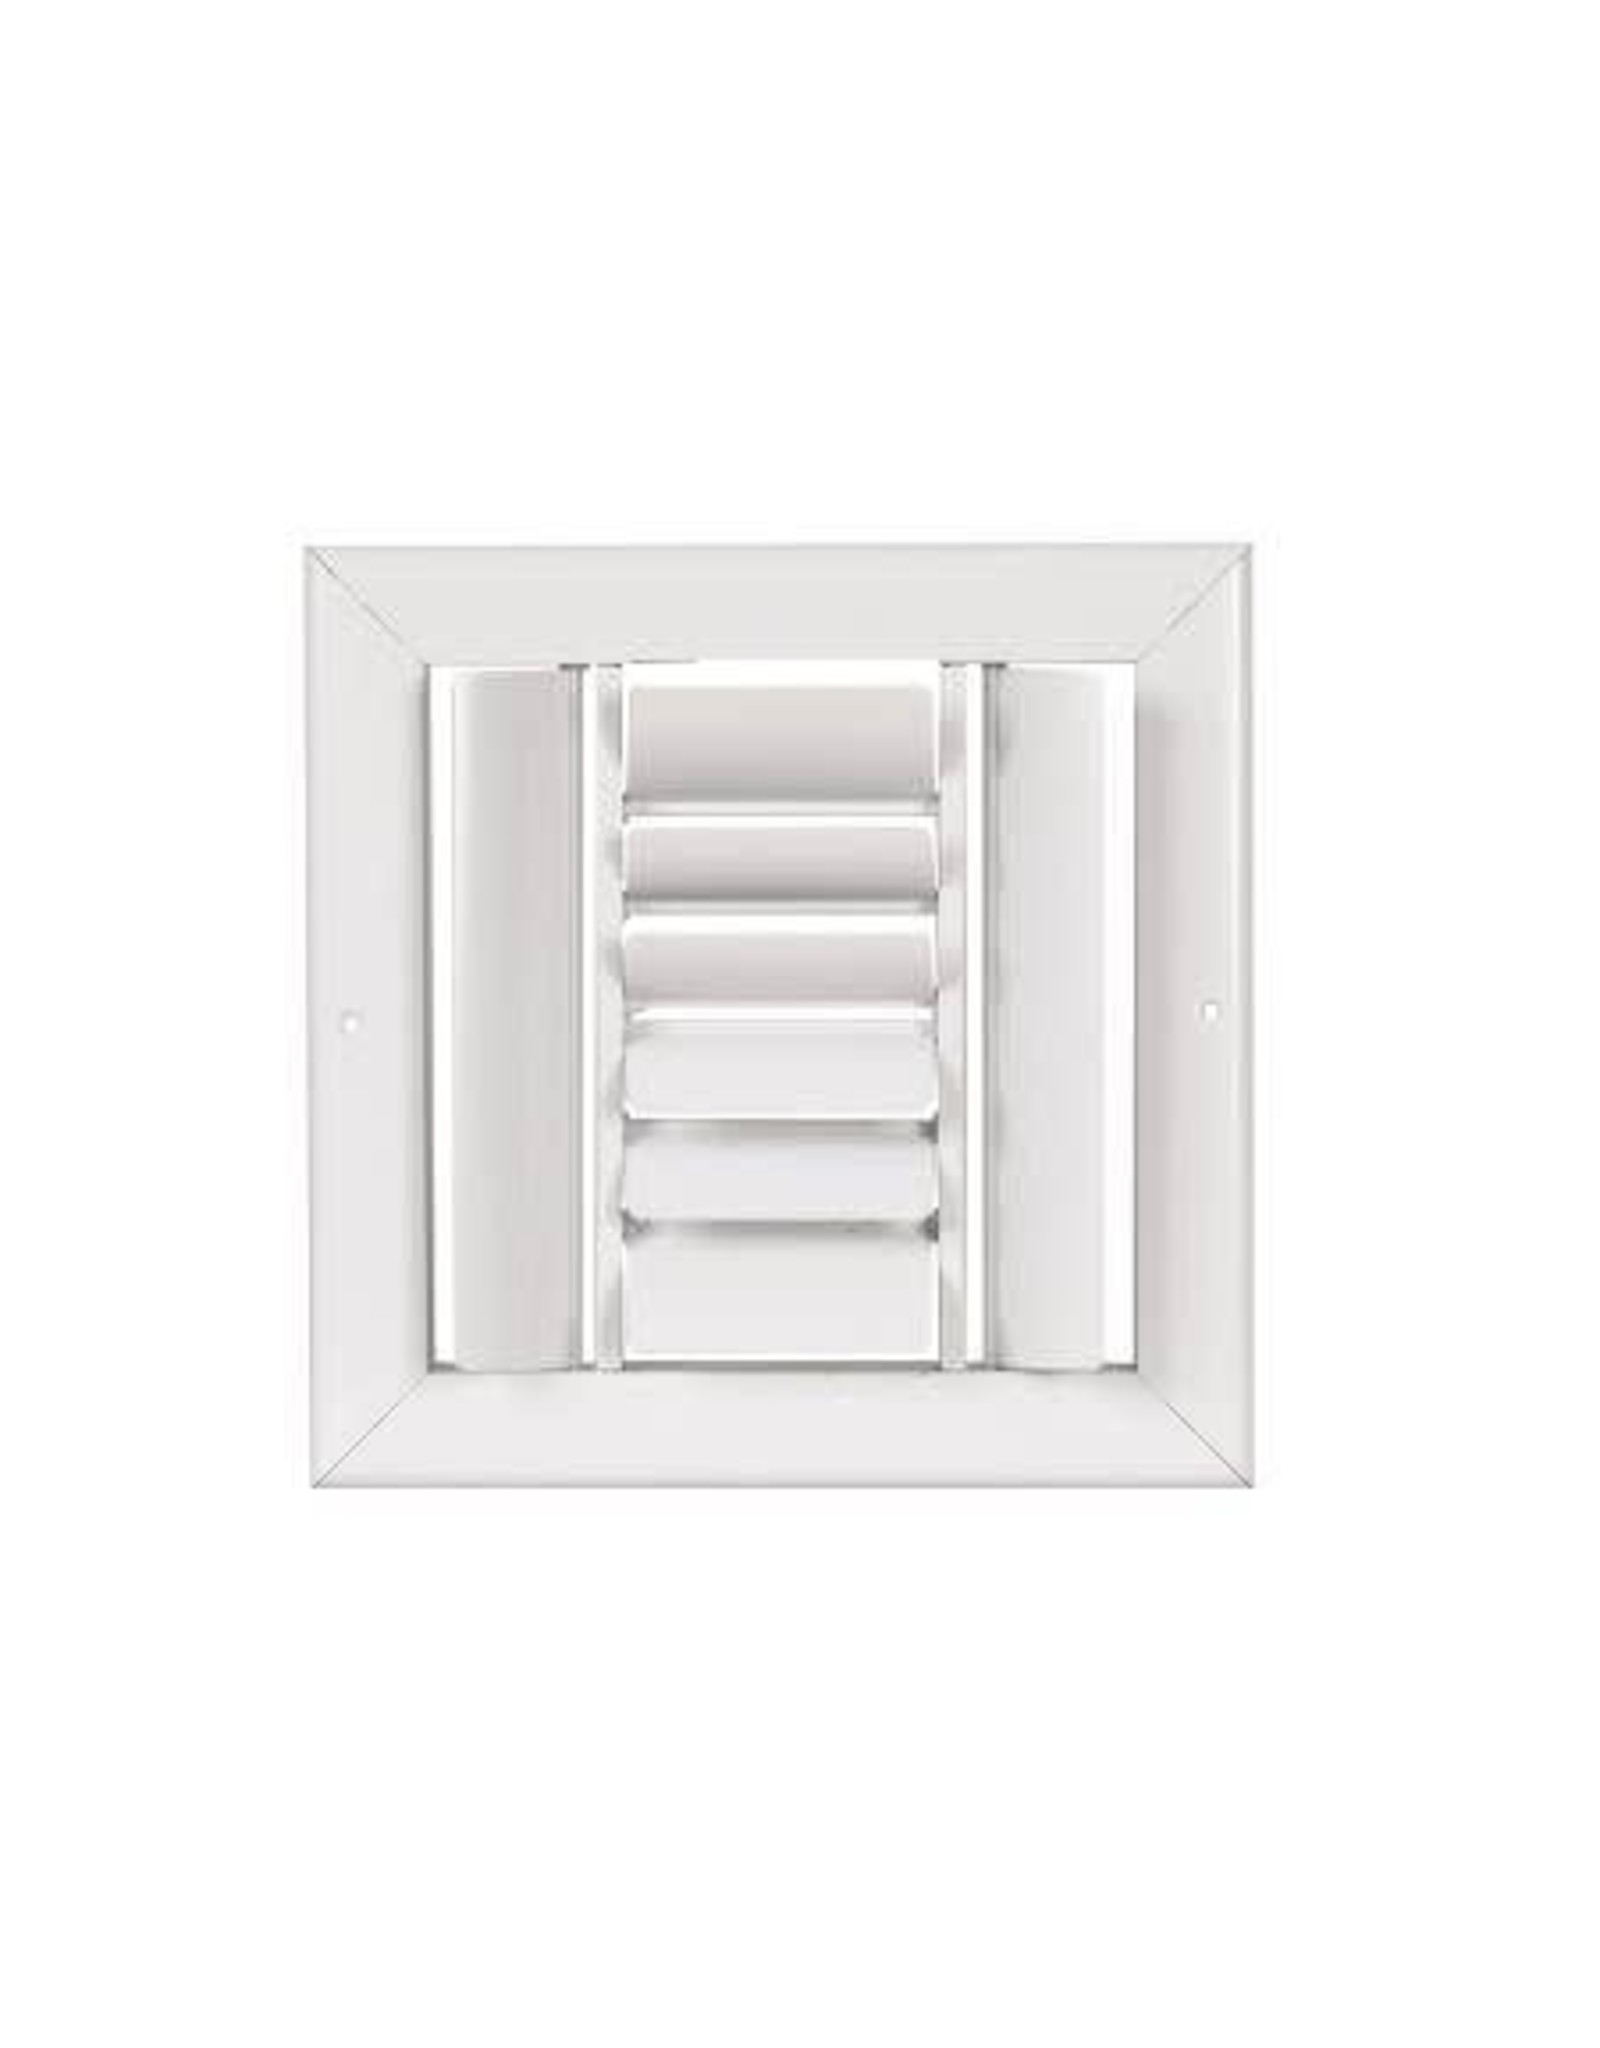 AirGuide Manufacturing LLC Ceiling Grille 4-way Curved Blade Supply Register with Square Contour Frame and Parallel Blade Damper